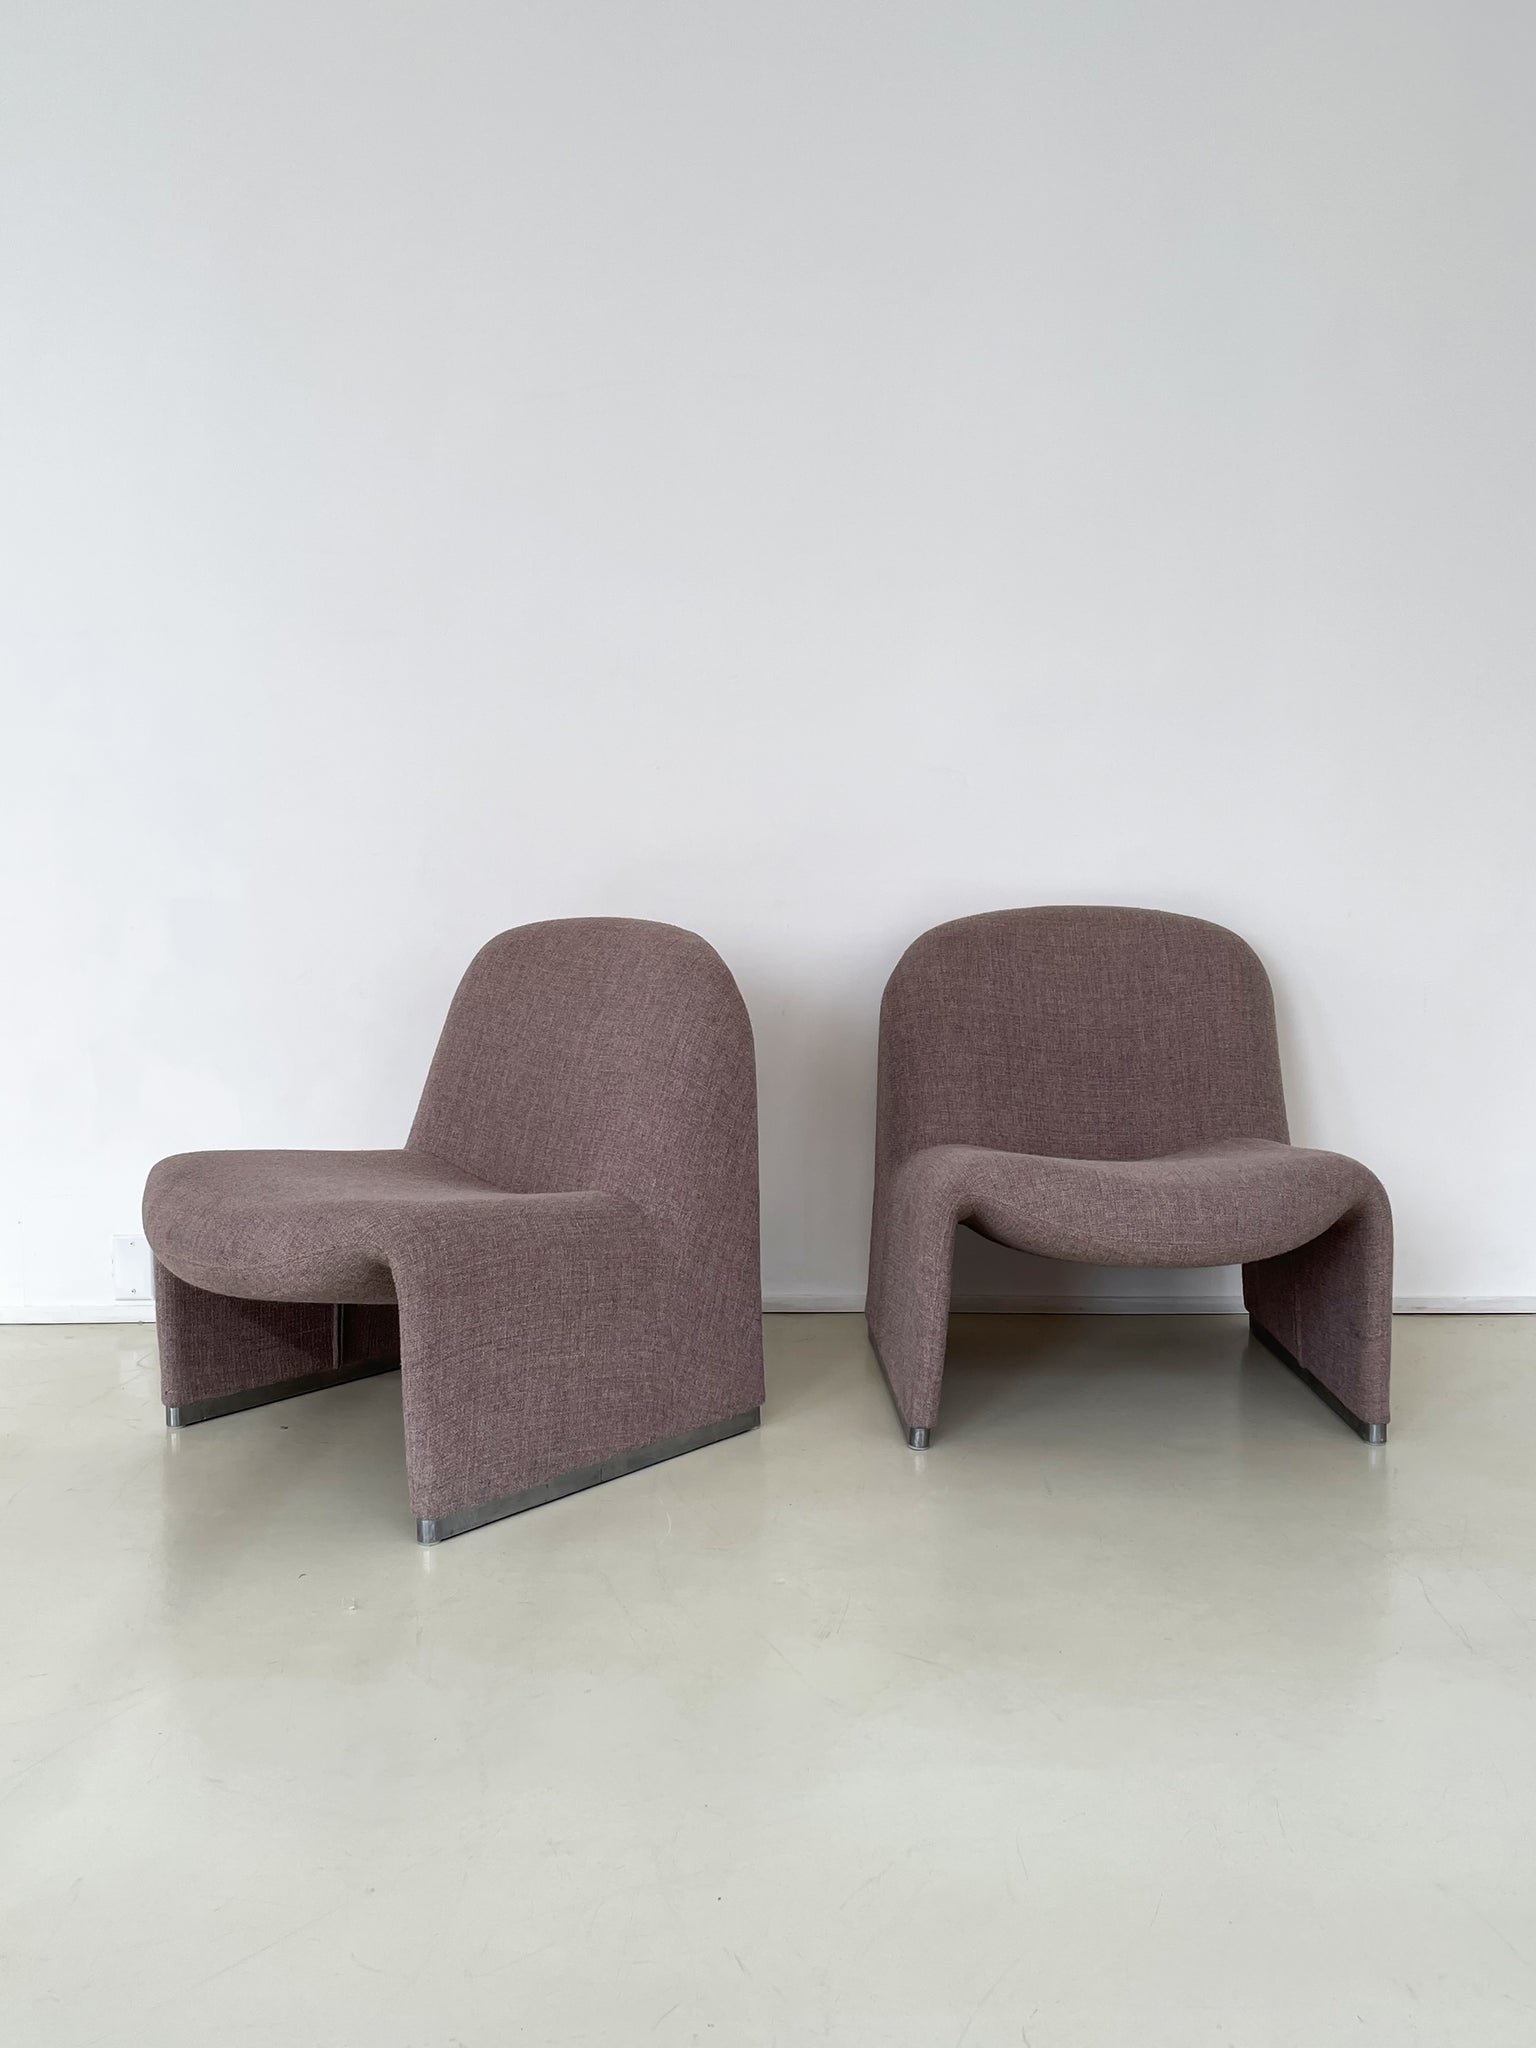 1970s Alky Chair by Giancarlo Piretti for Castelli - Each